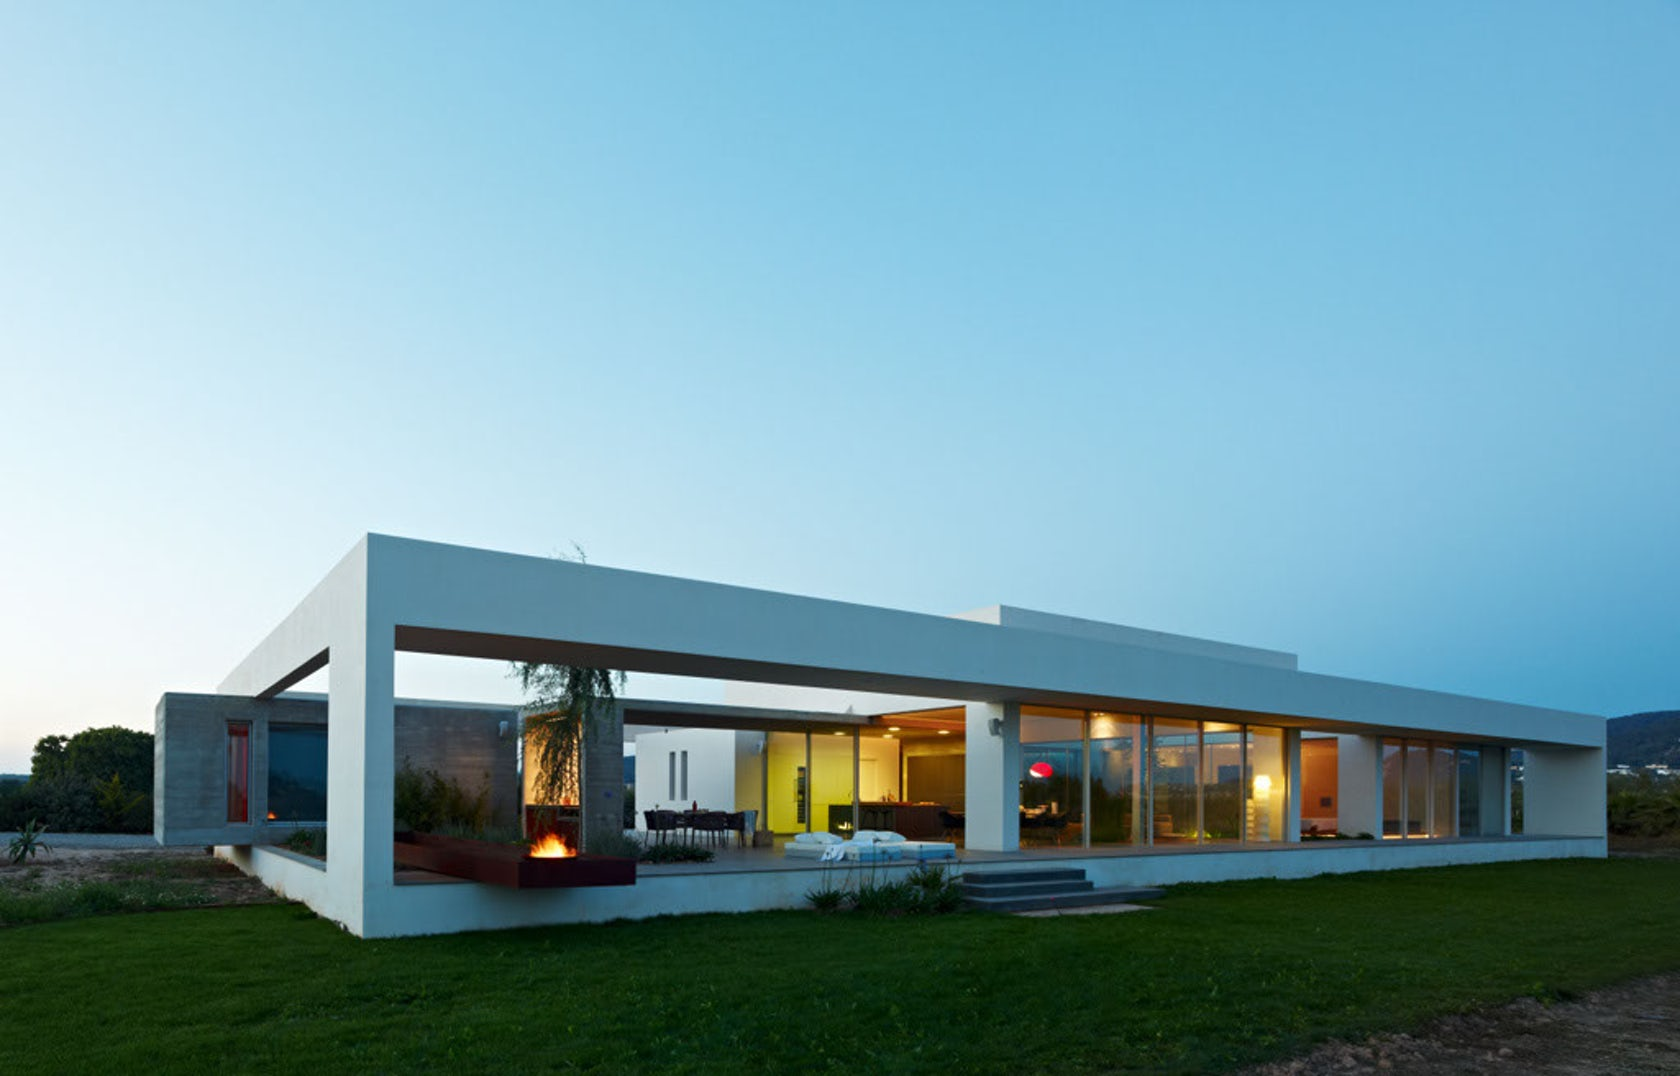 Simple and modern house architecture design with glass for Case minimaliste